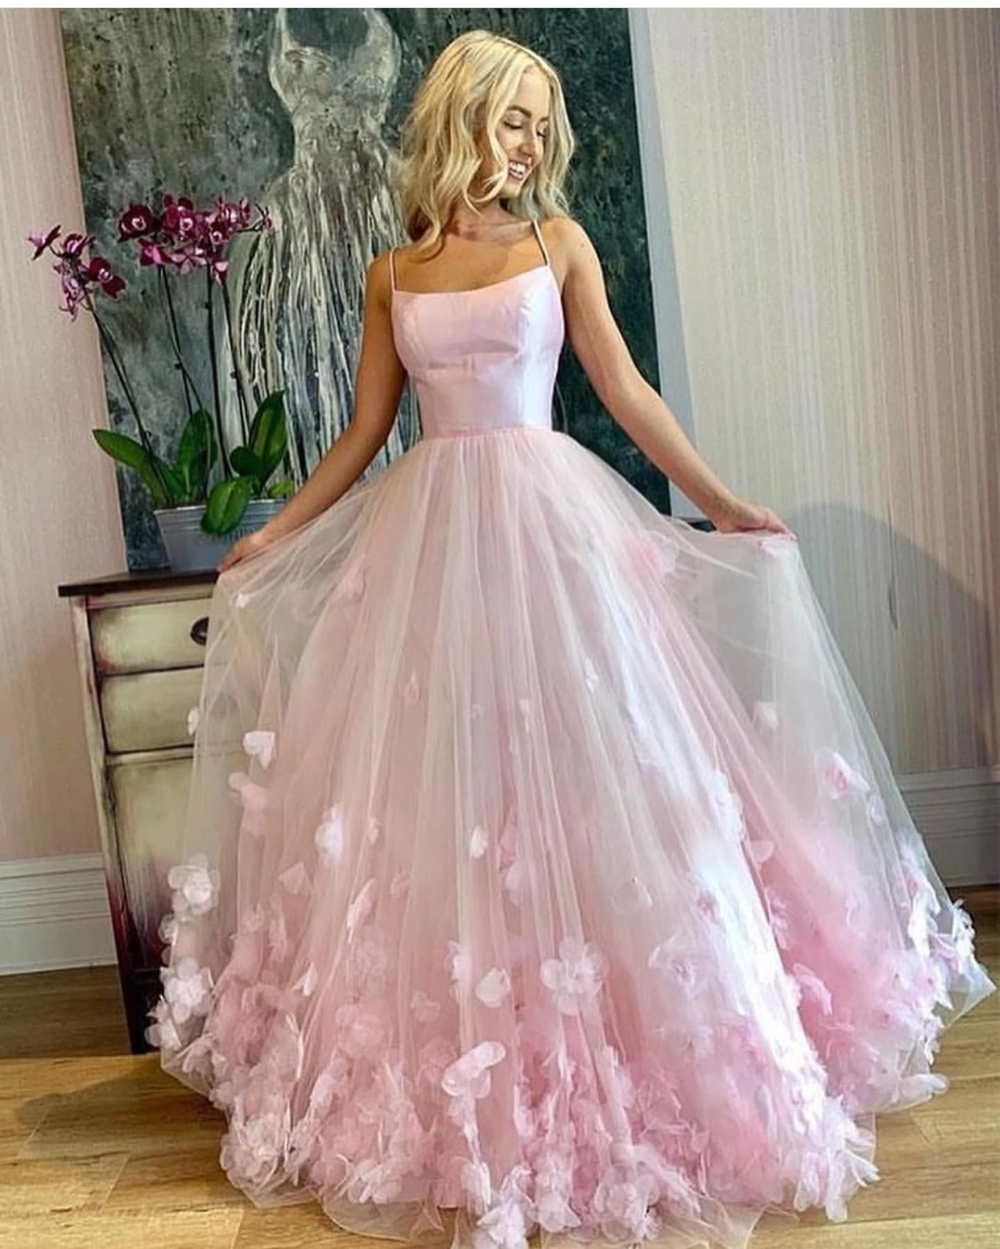 Pink Satin Top Tulle Evening Dresses,Floor Length A-Line Long Prom Dresses,SG53013 #promdresseslong Pink Satin Top Tulle Evening Dresses,Floor Length A-Line Long Prom Dresses,SG53013 Material Satin,Tulle Style Prom,Party,Spaghetti Straps,A-Line,Open Back Shipping Fedex,DHL or some special airline.**Free shipping** Total Time 2-4 weeks (ORGETRUSH) Making Handmade(This dress is Made-To-Order. Whether you choose a standard size or custom measurements, our tailors craft each dress to order.)